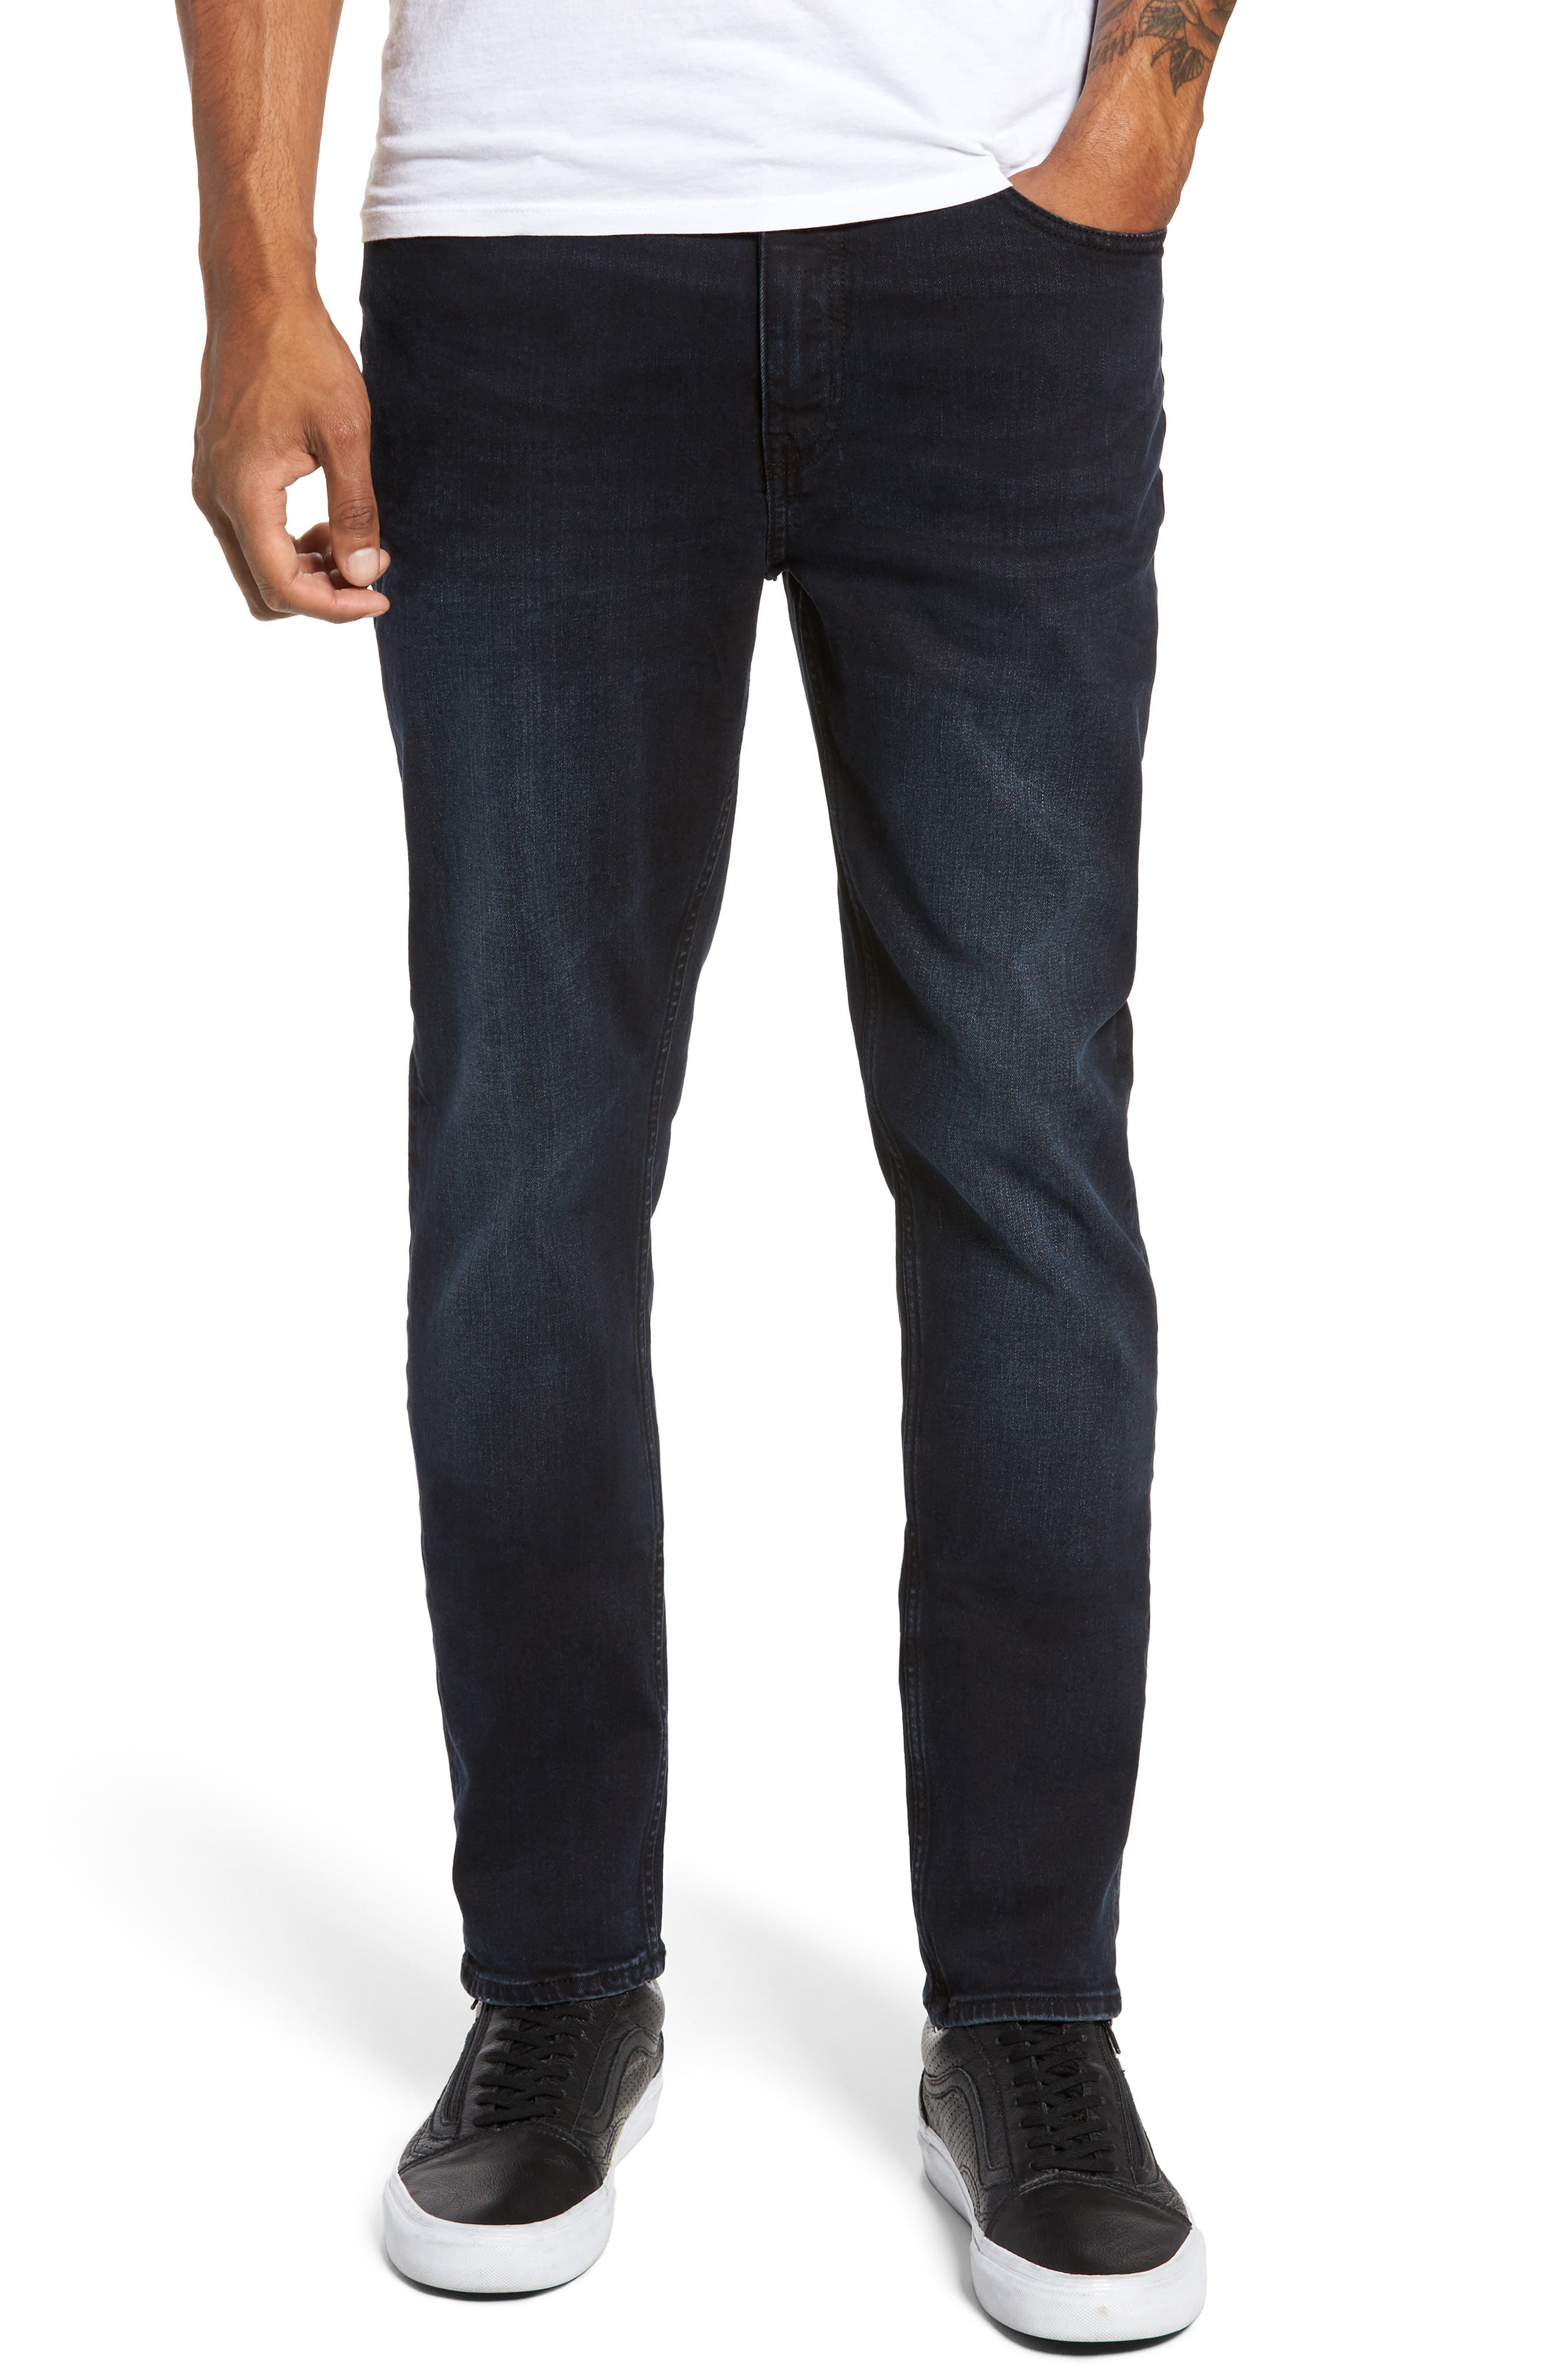 Sonic Skinny Fit Jeans,                             Main thumbnail 1, color,                             402